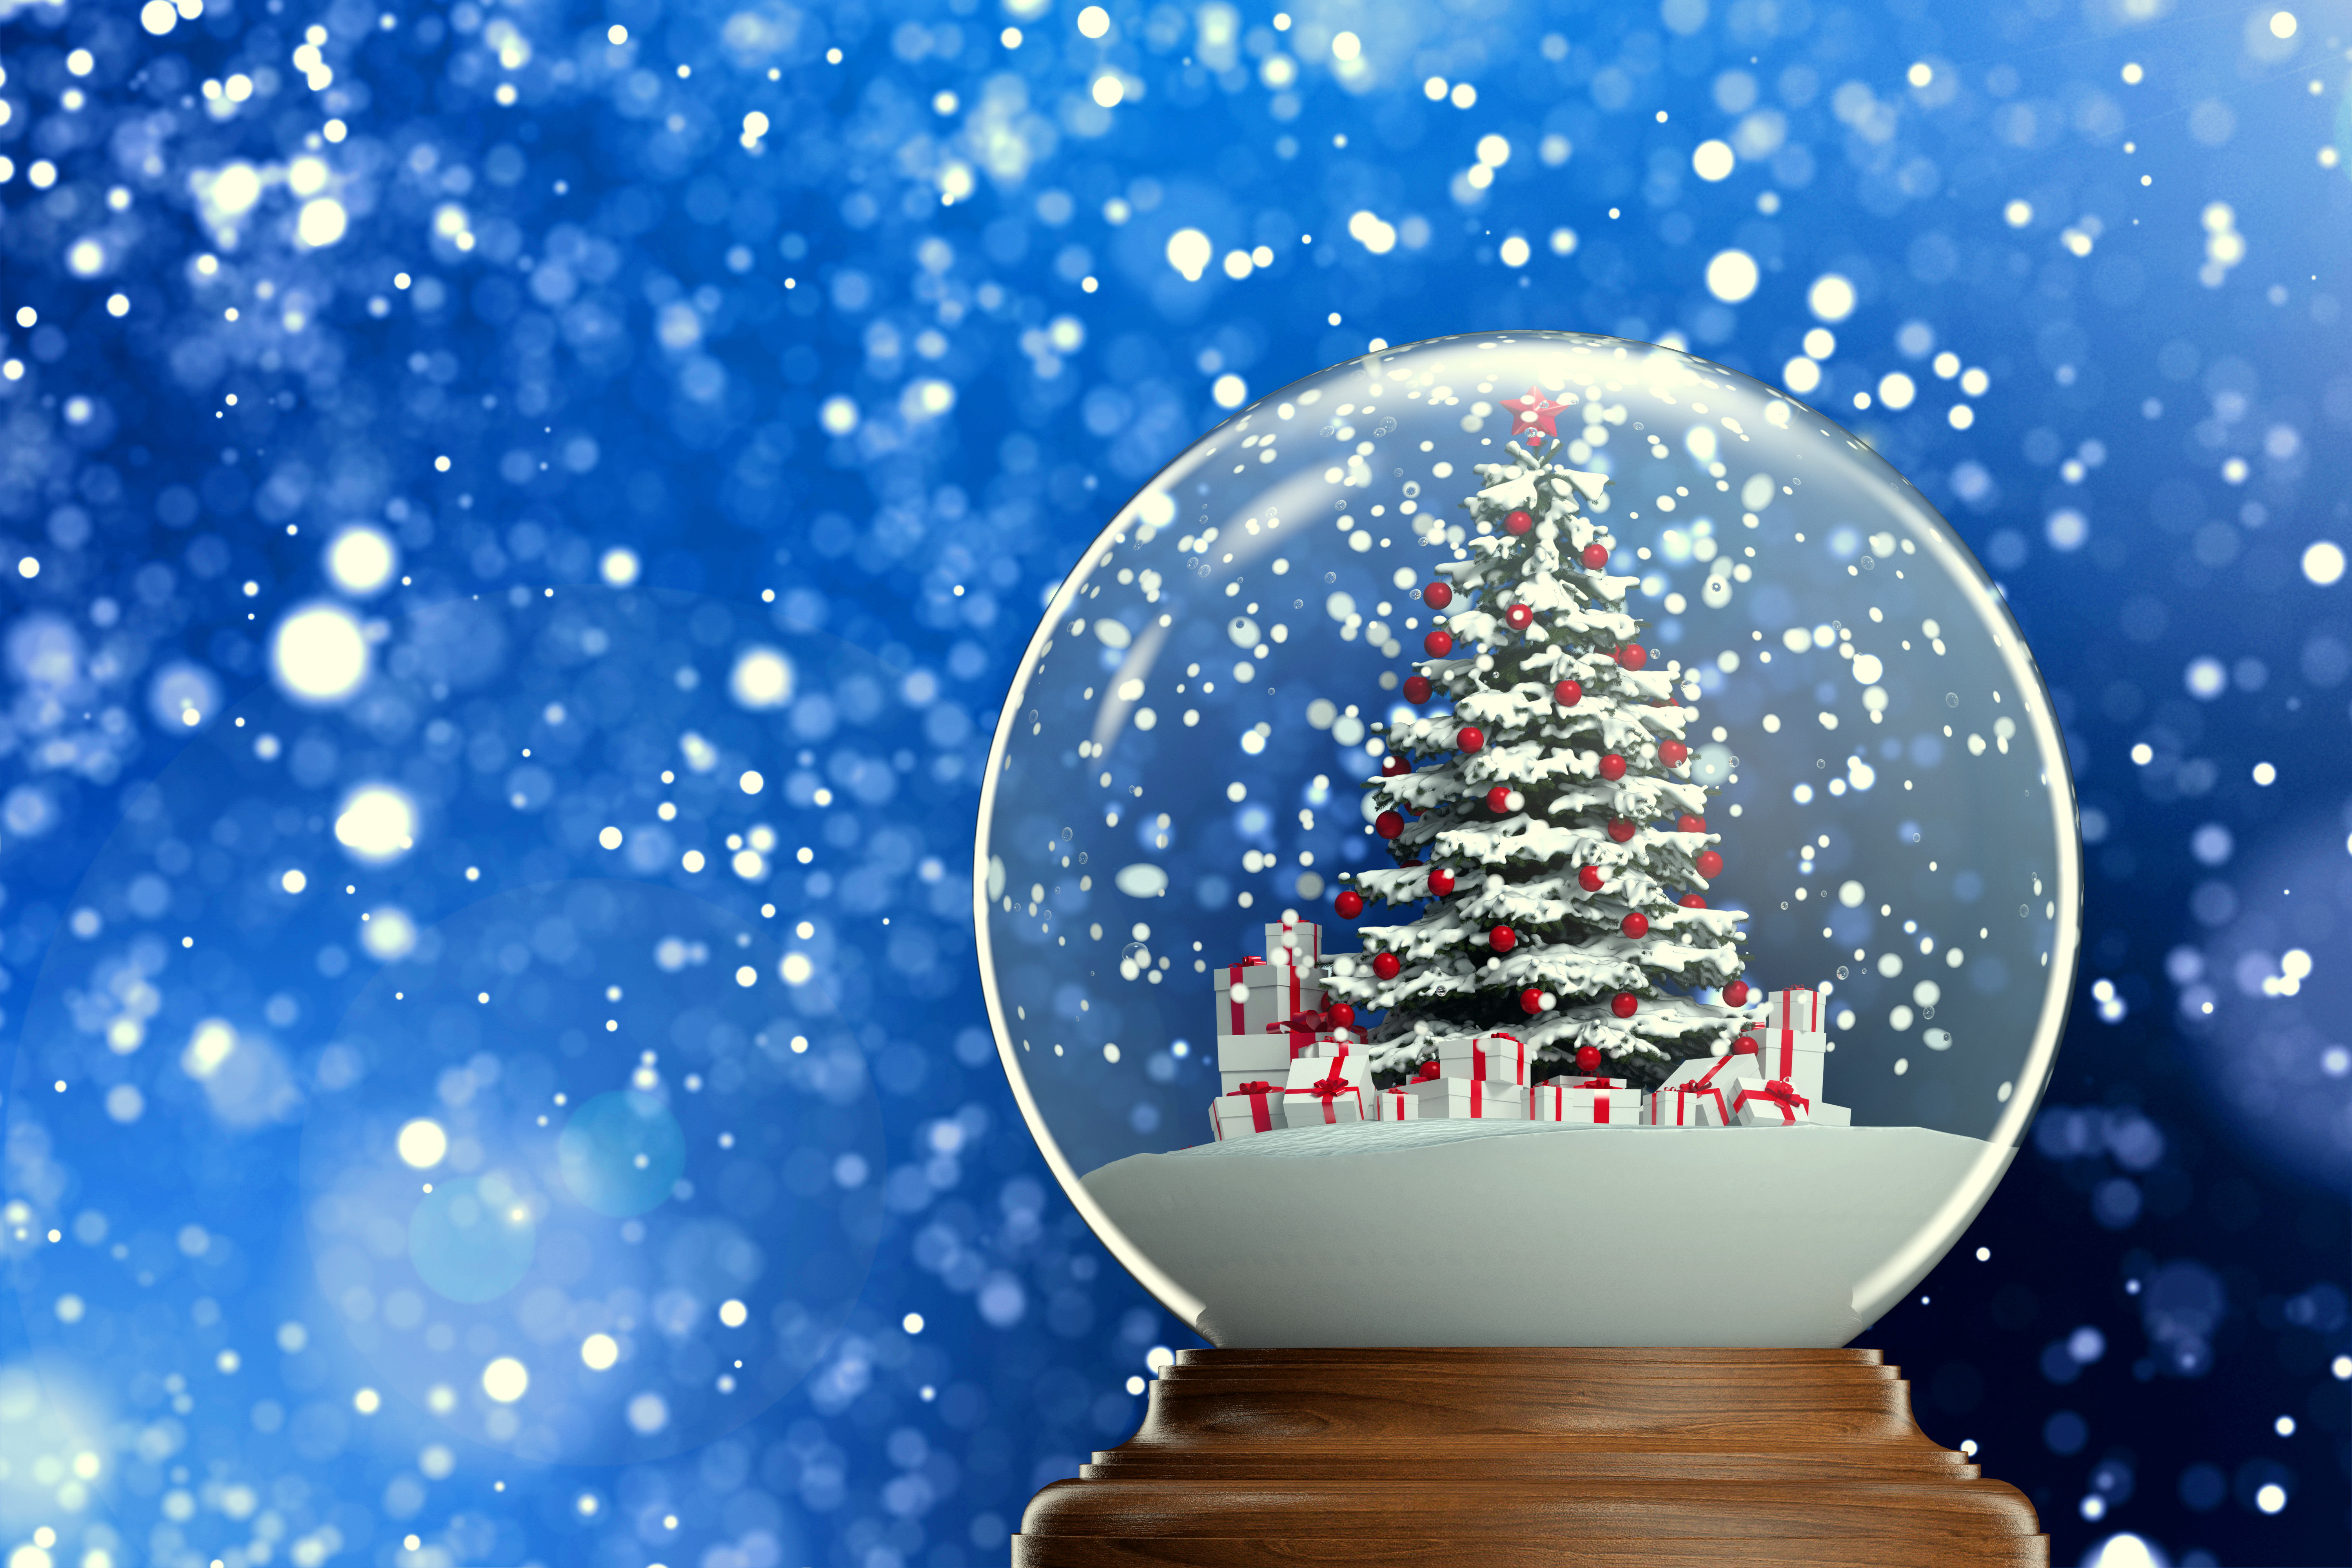 snow globes wallpaper  25 Snow Globe HD Wallpapers | Background Images - Wallpaper Abyss